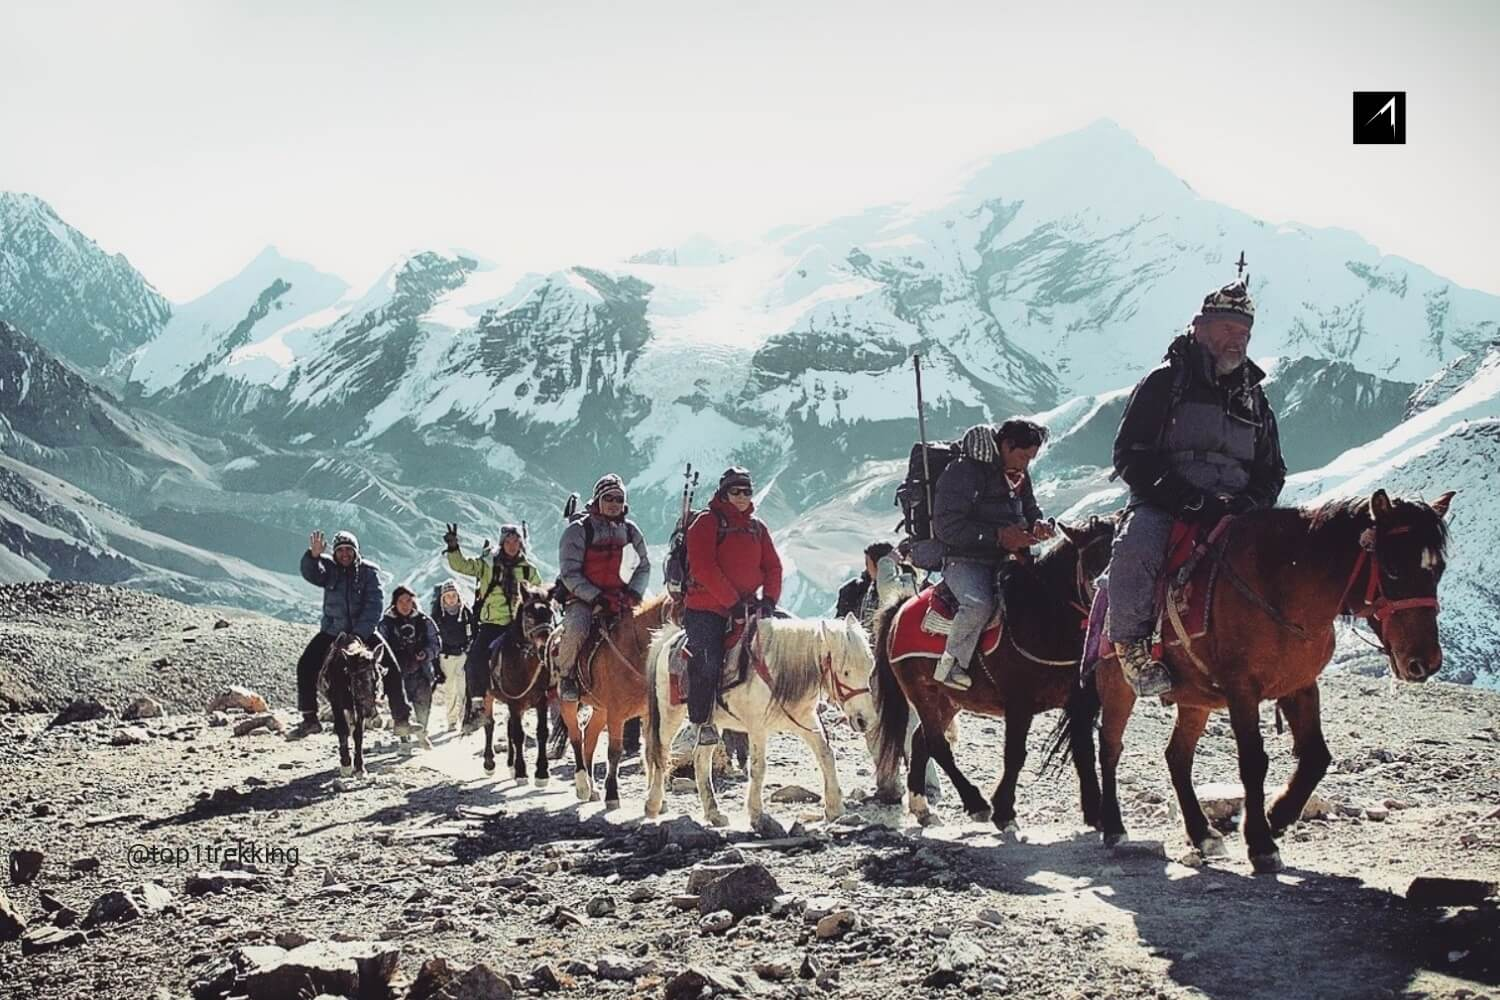 Tourists crossing the Thorong La at 5,416 metres (17,769 ft) the highest altitude of Annapurna Circuit Trek